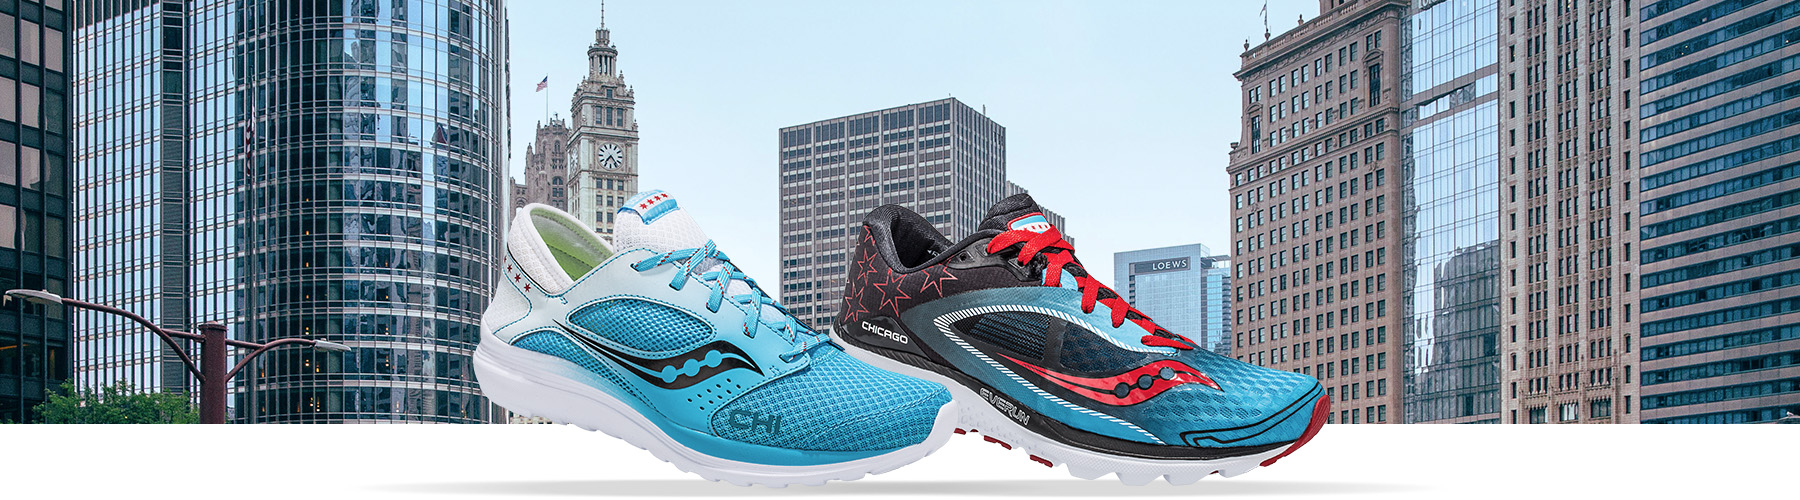 The Chicago Pack - A limited edition collection inspired by the Windy City